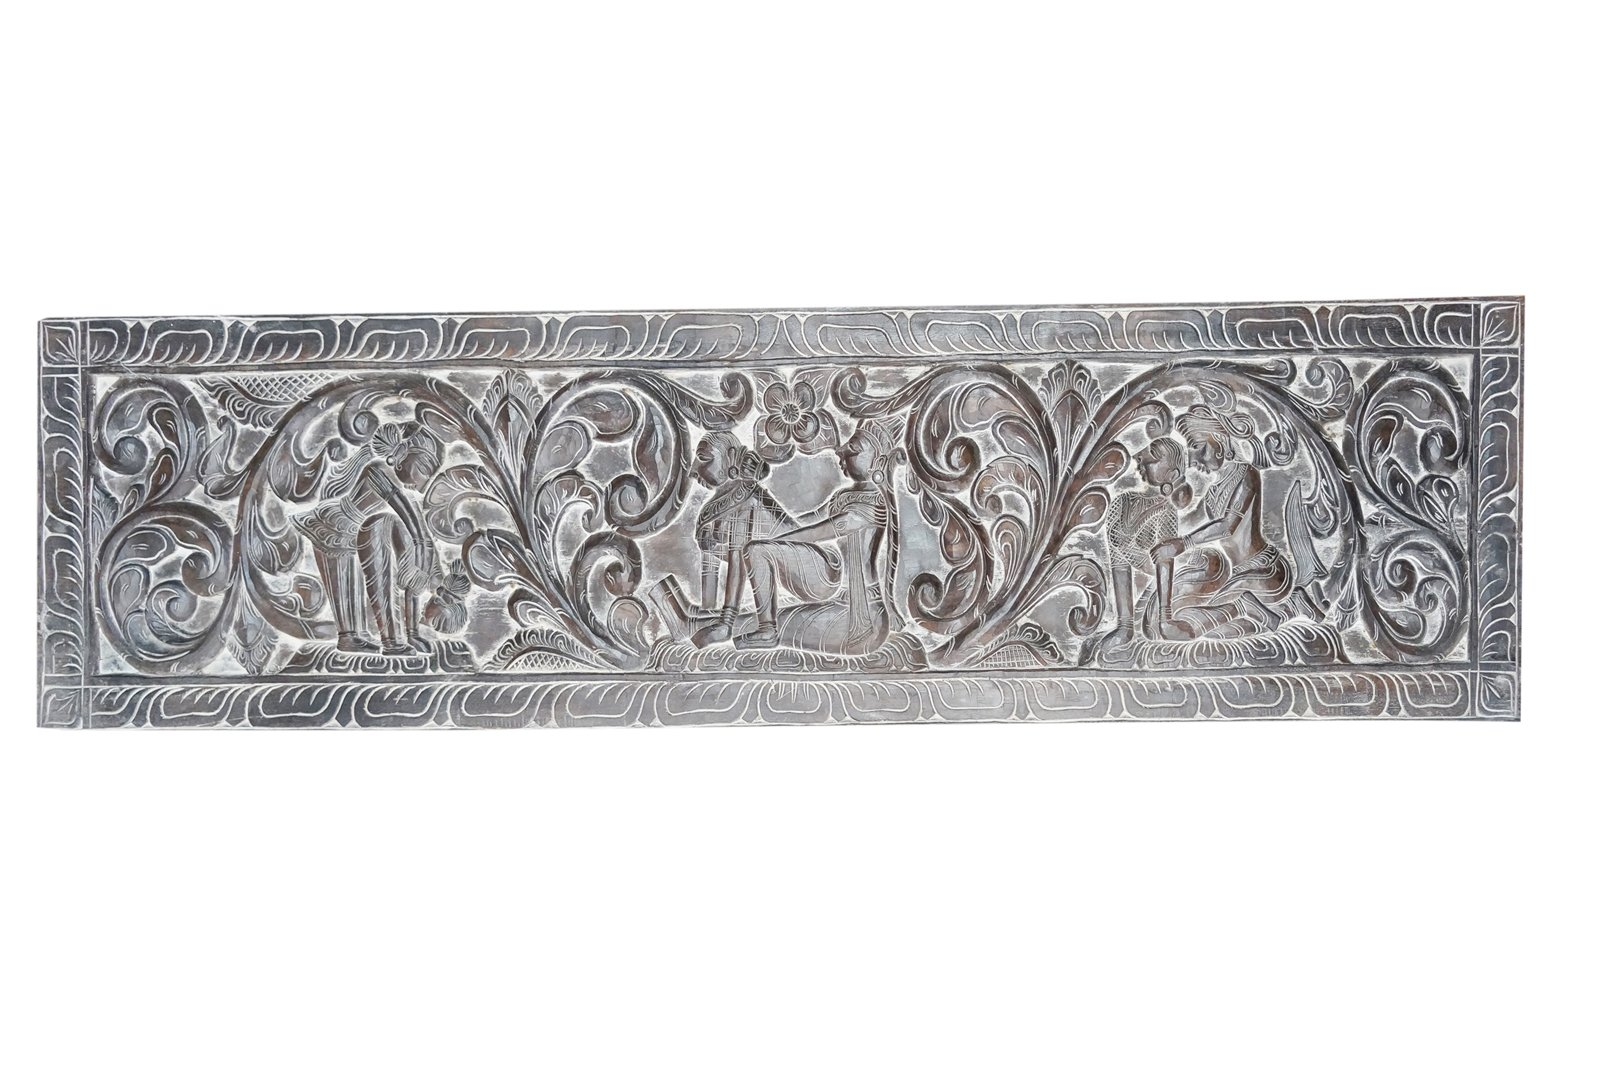 Kamasutra Handcarved Decorative Headboard the symbol of Love Vintage Wall Sculpture Eclectic Decor